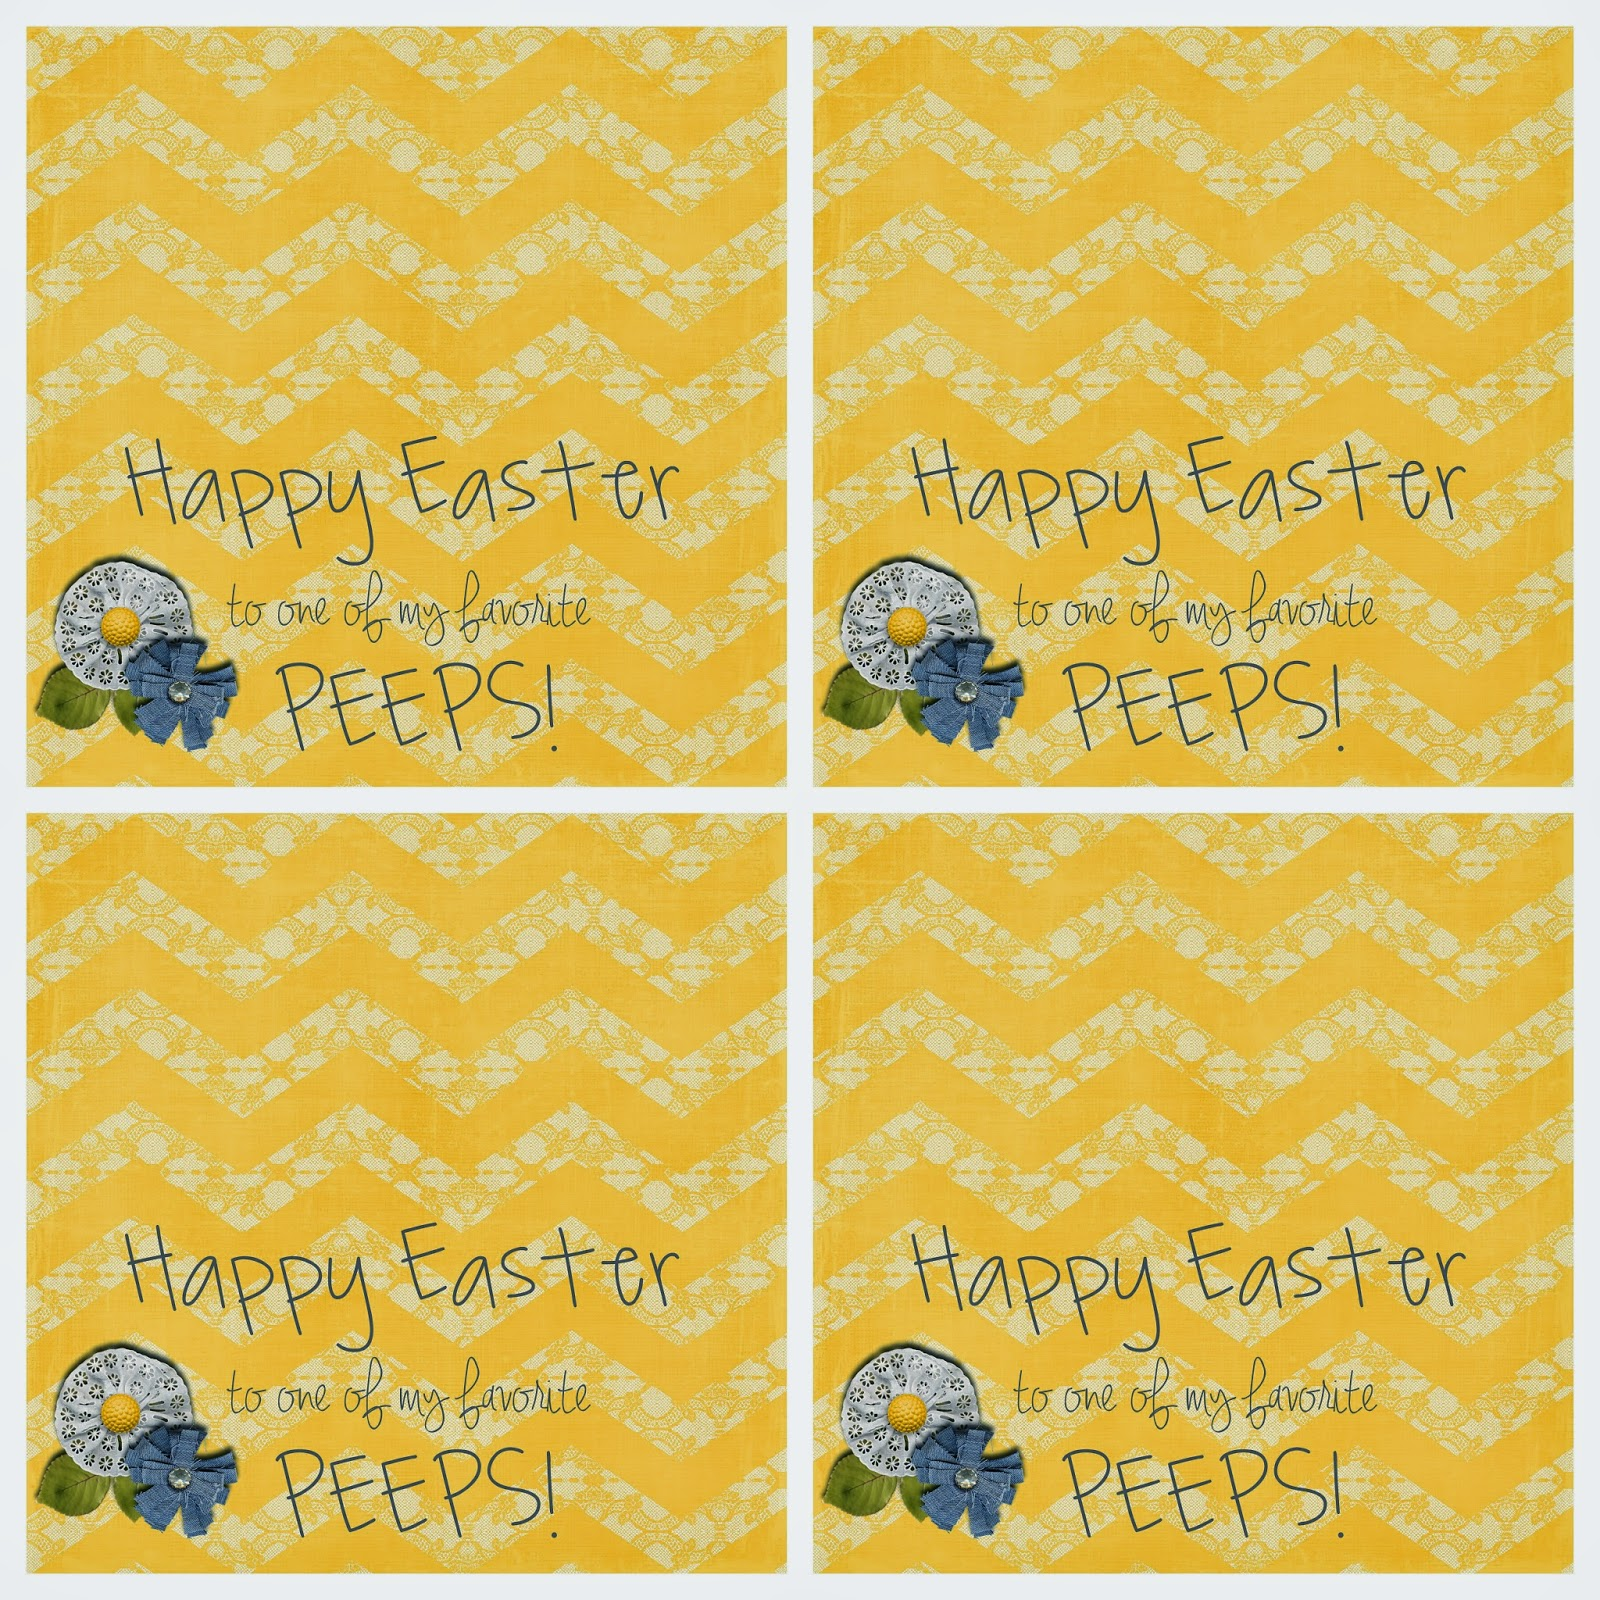 Easter Peeps S'mores free printable